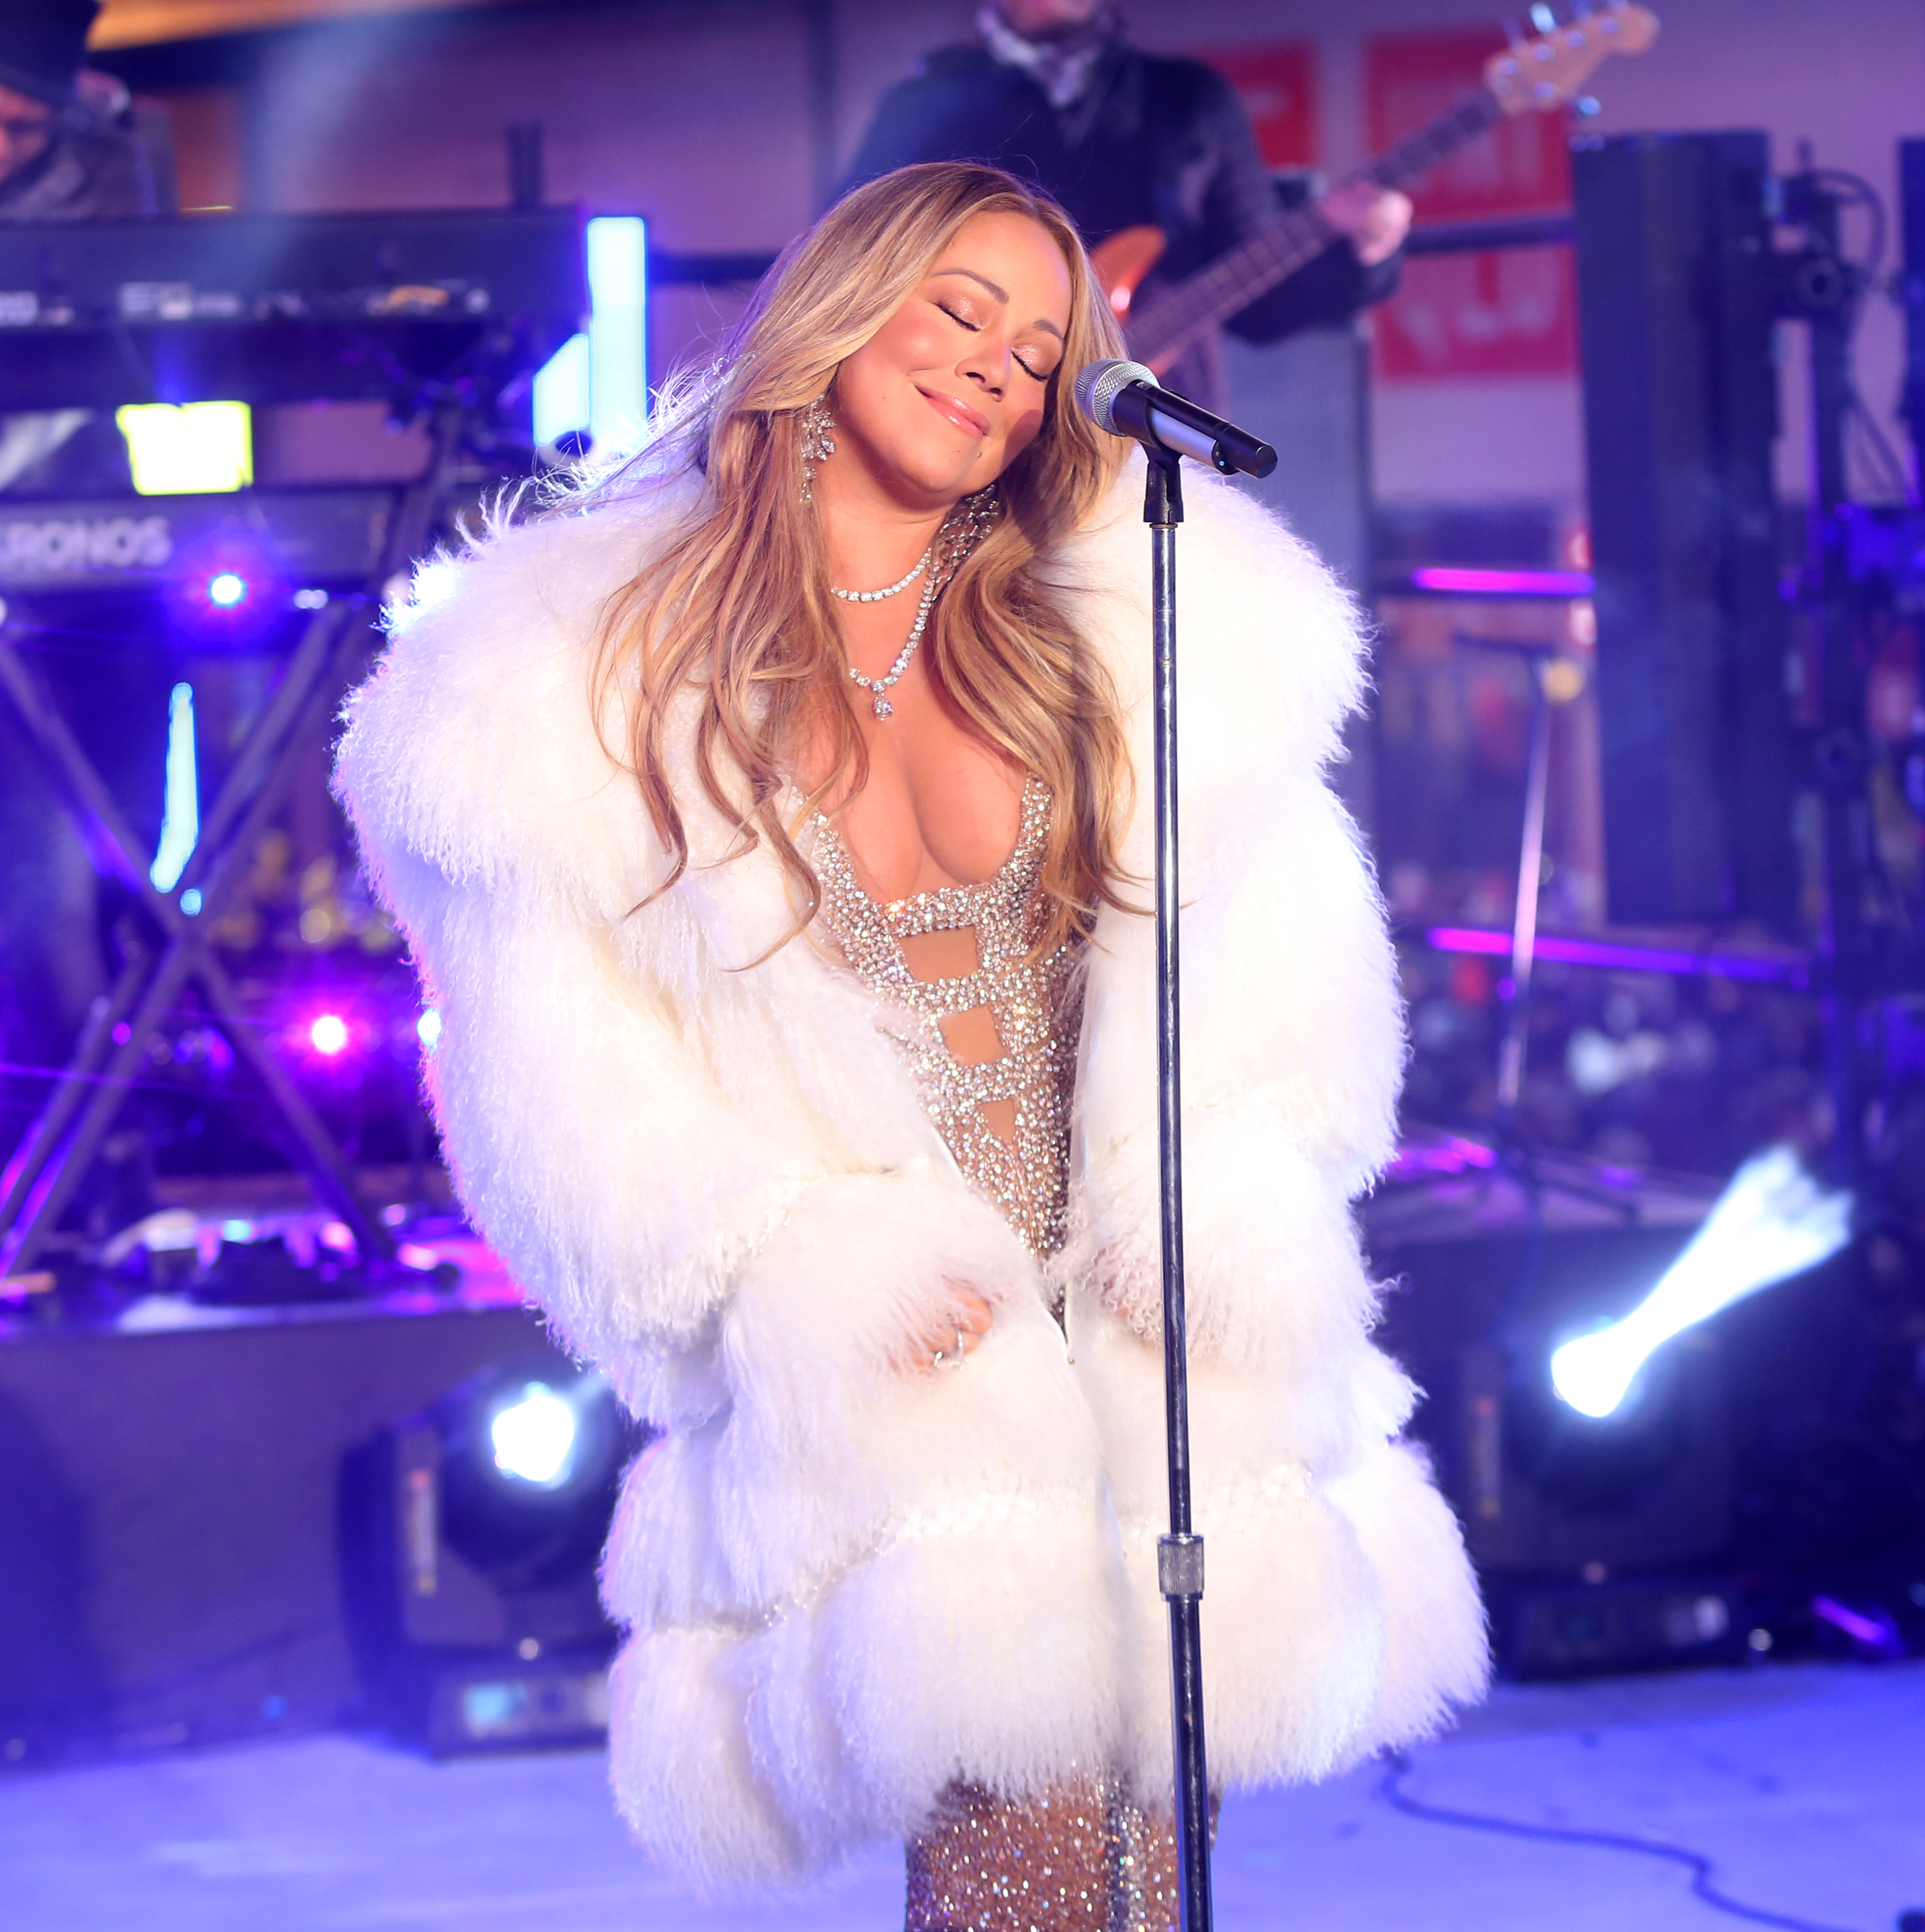 Mariah Carey performs at Dick Clark's New Year's Rockin' Eve in NYC <P> Pictured: Mariah Carey <B>Ref: SPL1638729  311217  </B><BR/> Picture by: Richard Buxo / Splash News<BR/> </P><P> <B>Splash News and Pictures</B><BR/> Los Angeles:310-821-2666<BR/> New York:212-619-2666<BR/> London:870-934-2666<BR/> <span id=